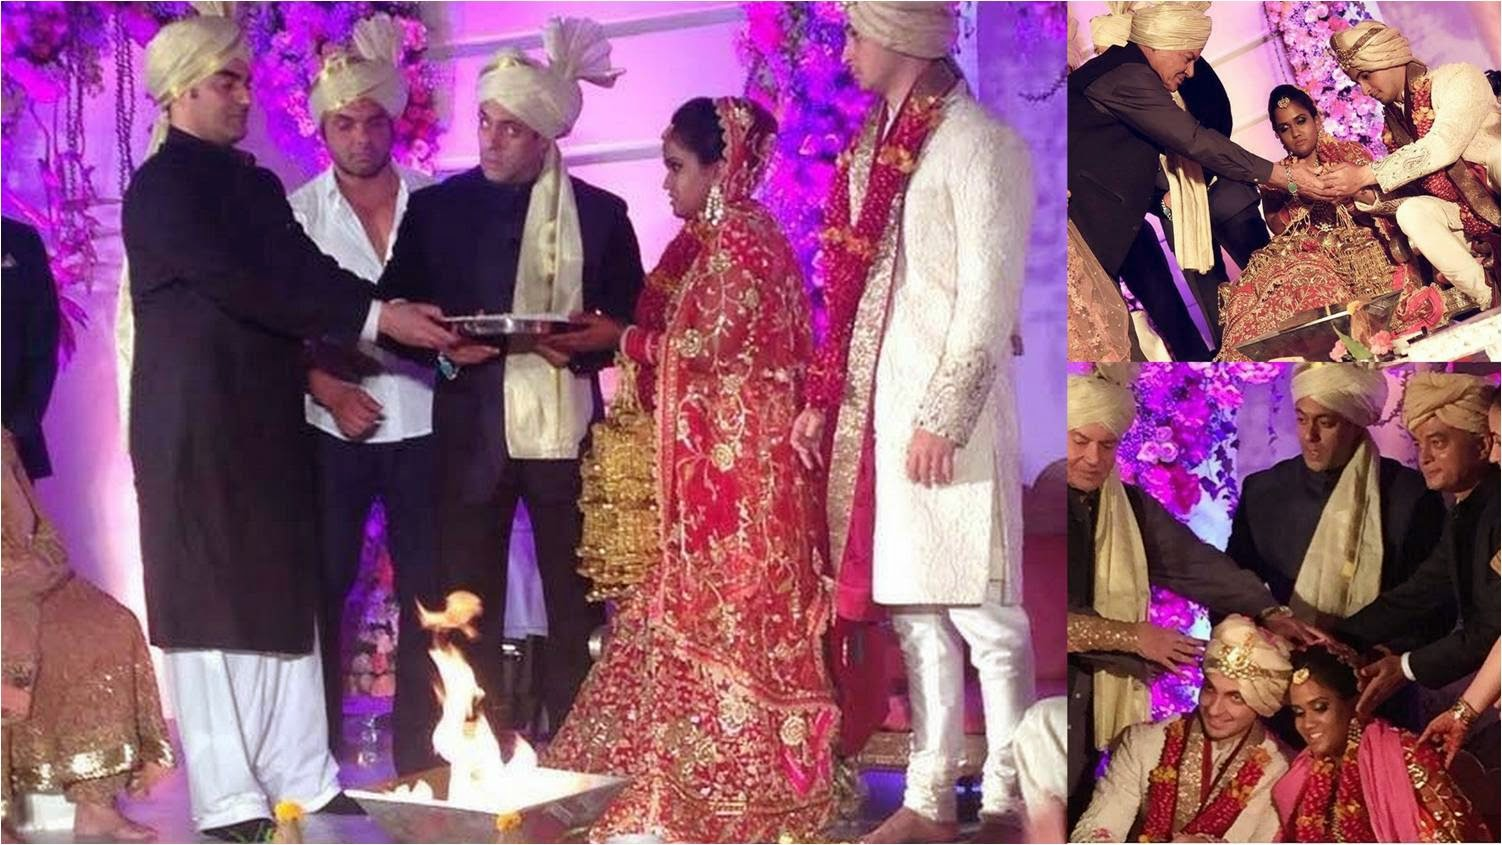 Arpita and Aayush took seven vows